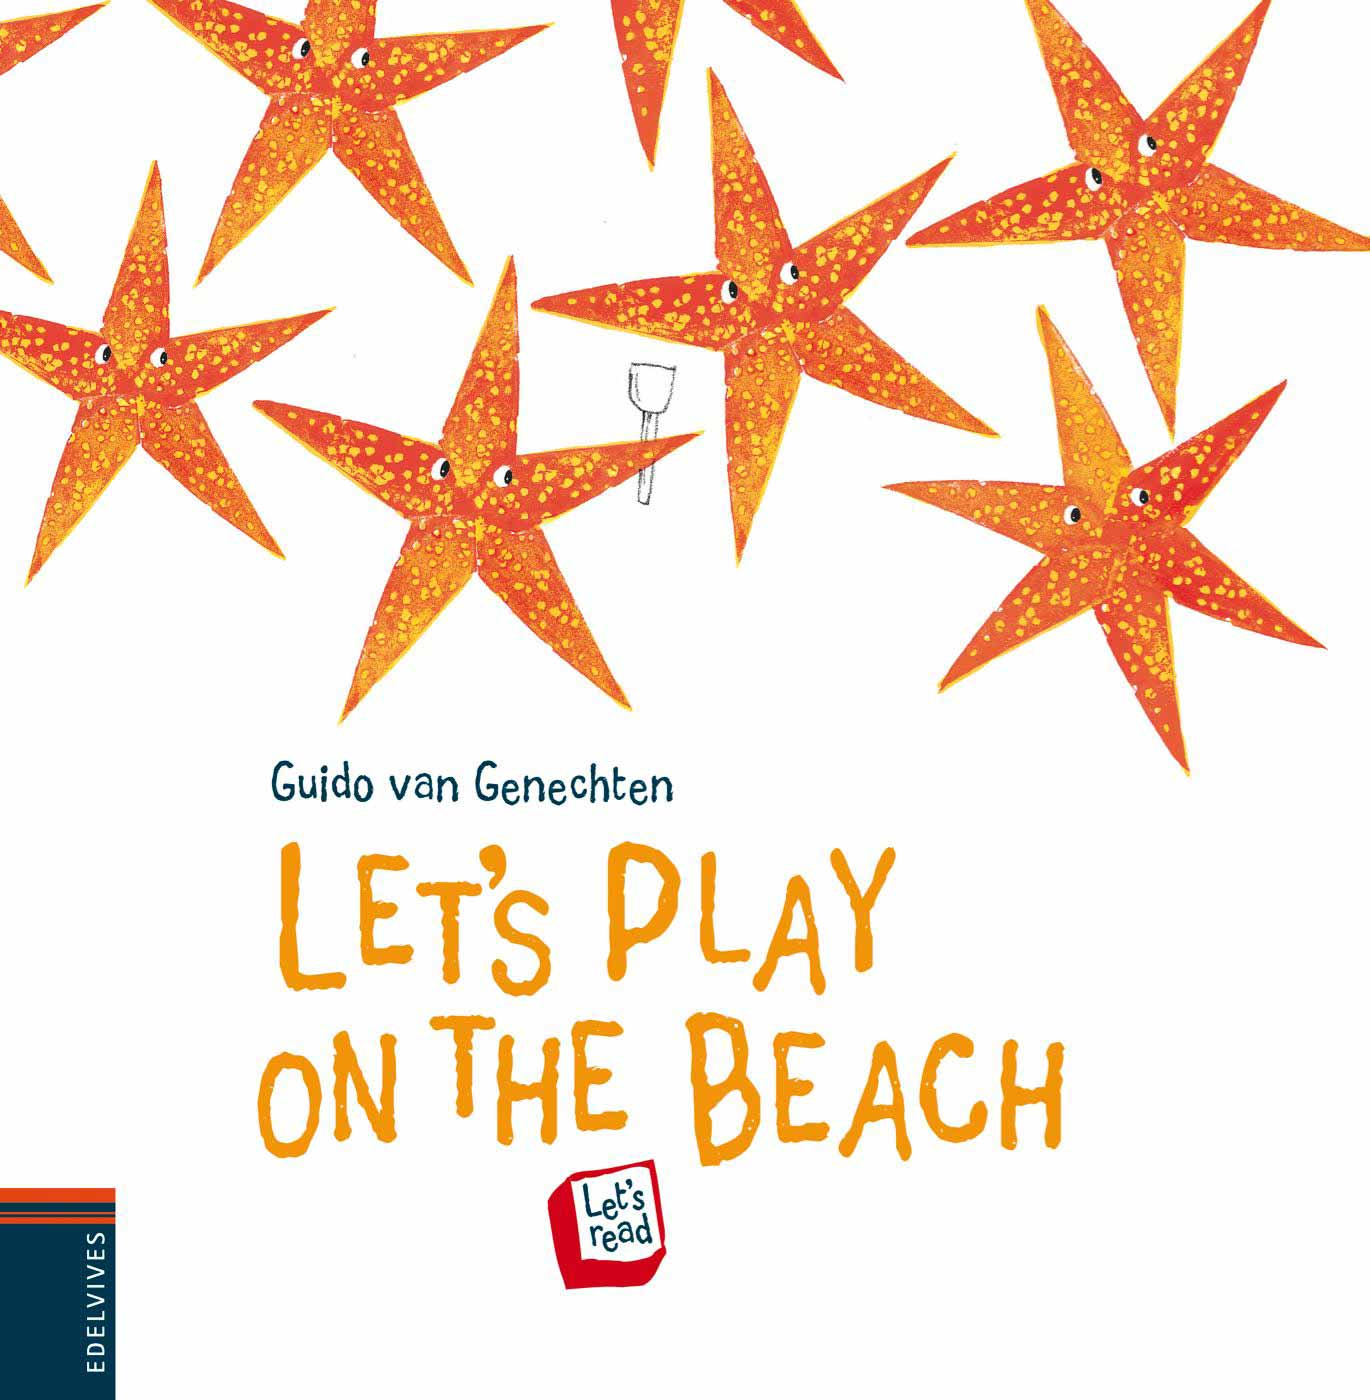 LETS PLAY ON THE BEACH